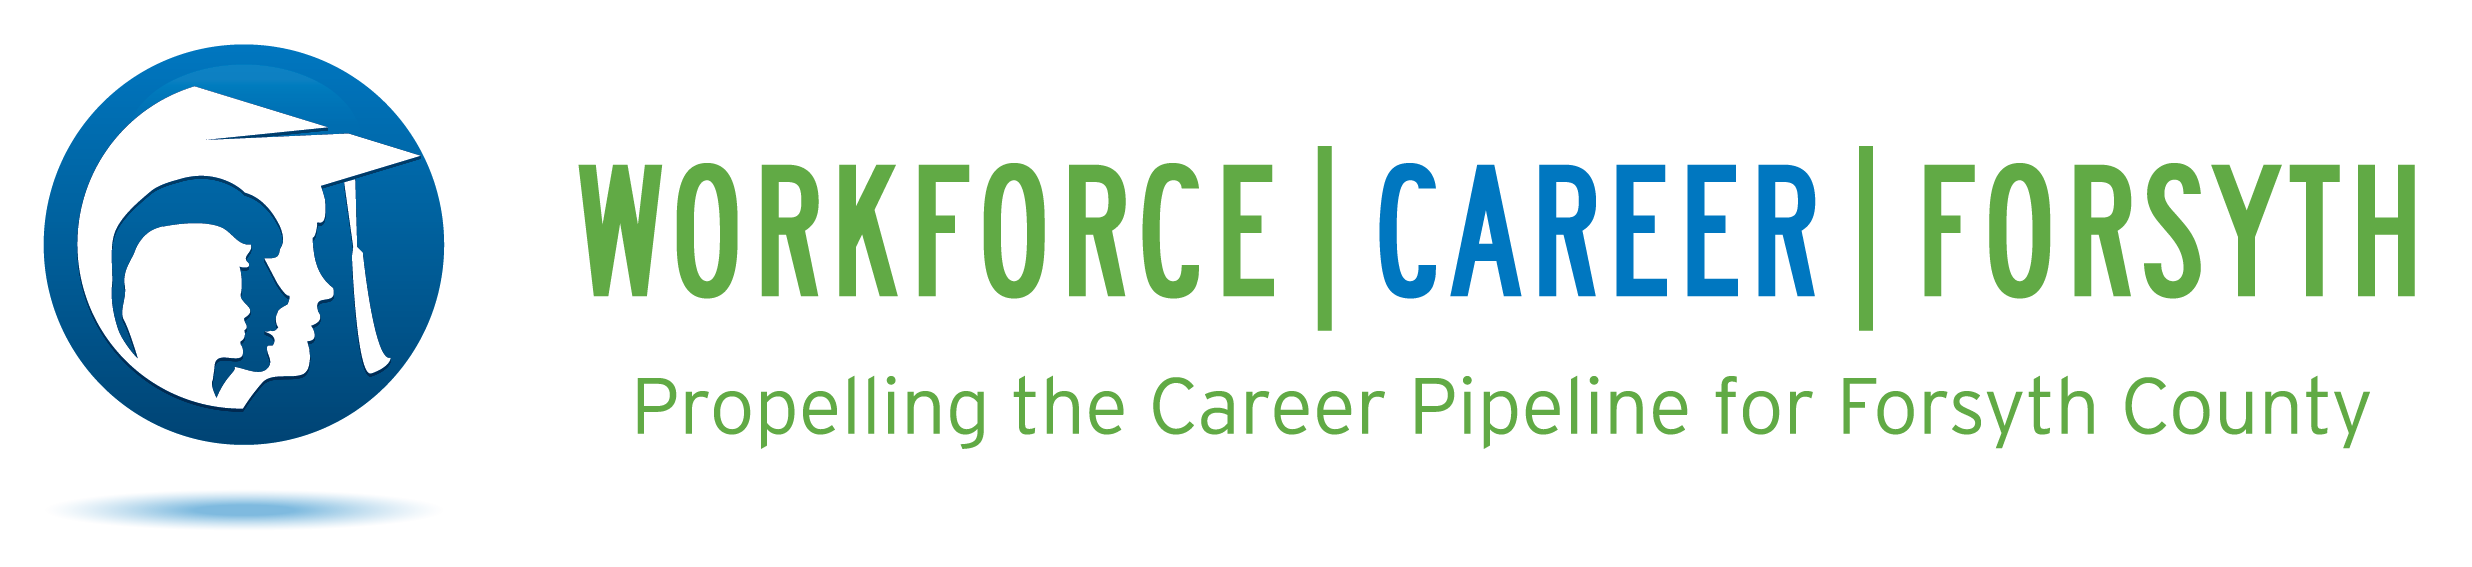 Workforce Career Forsyth logo